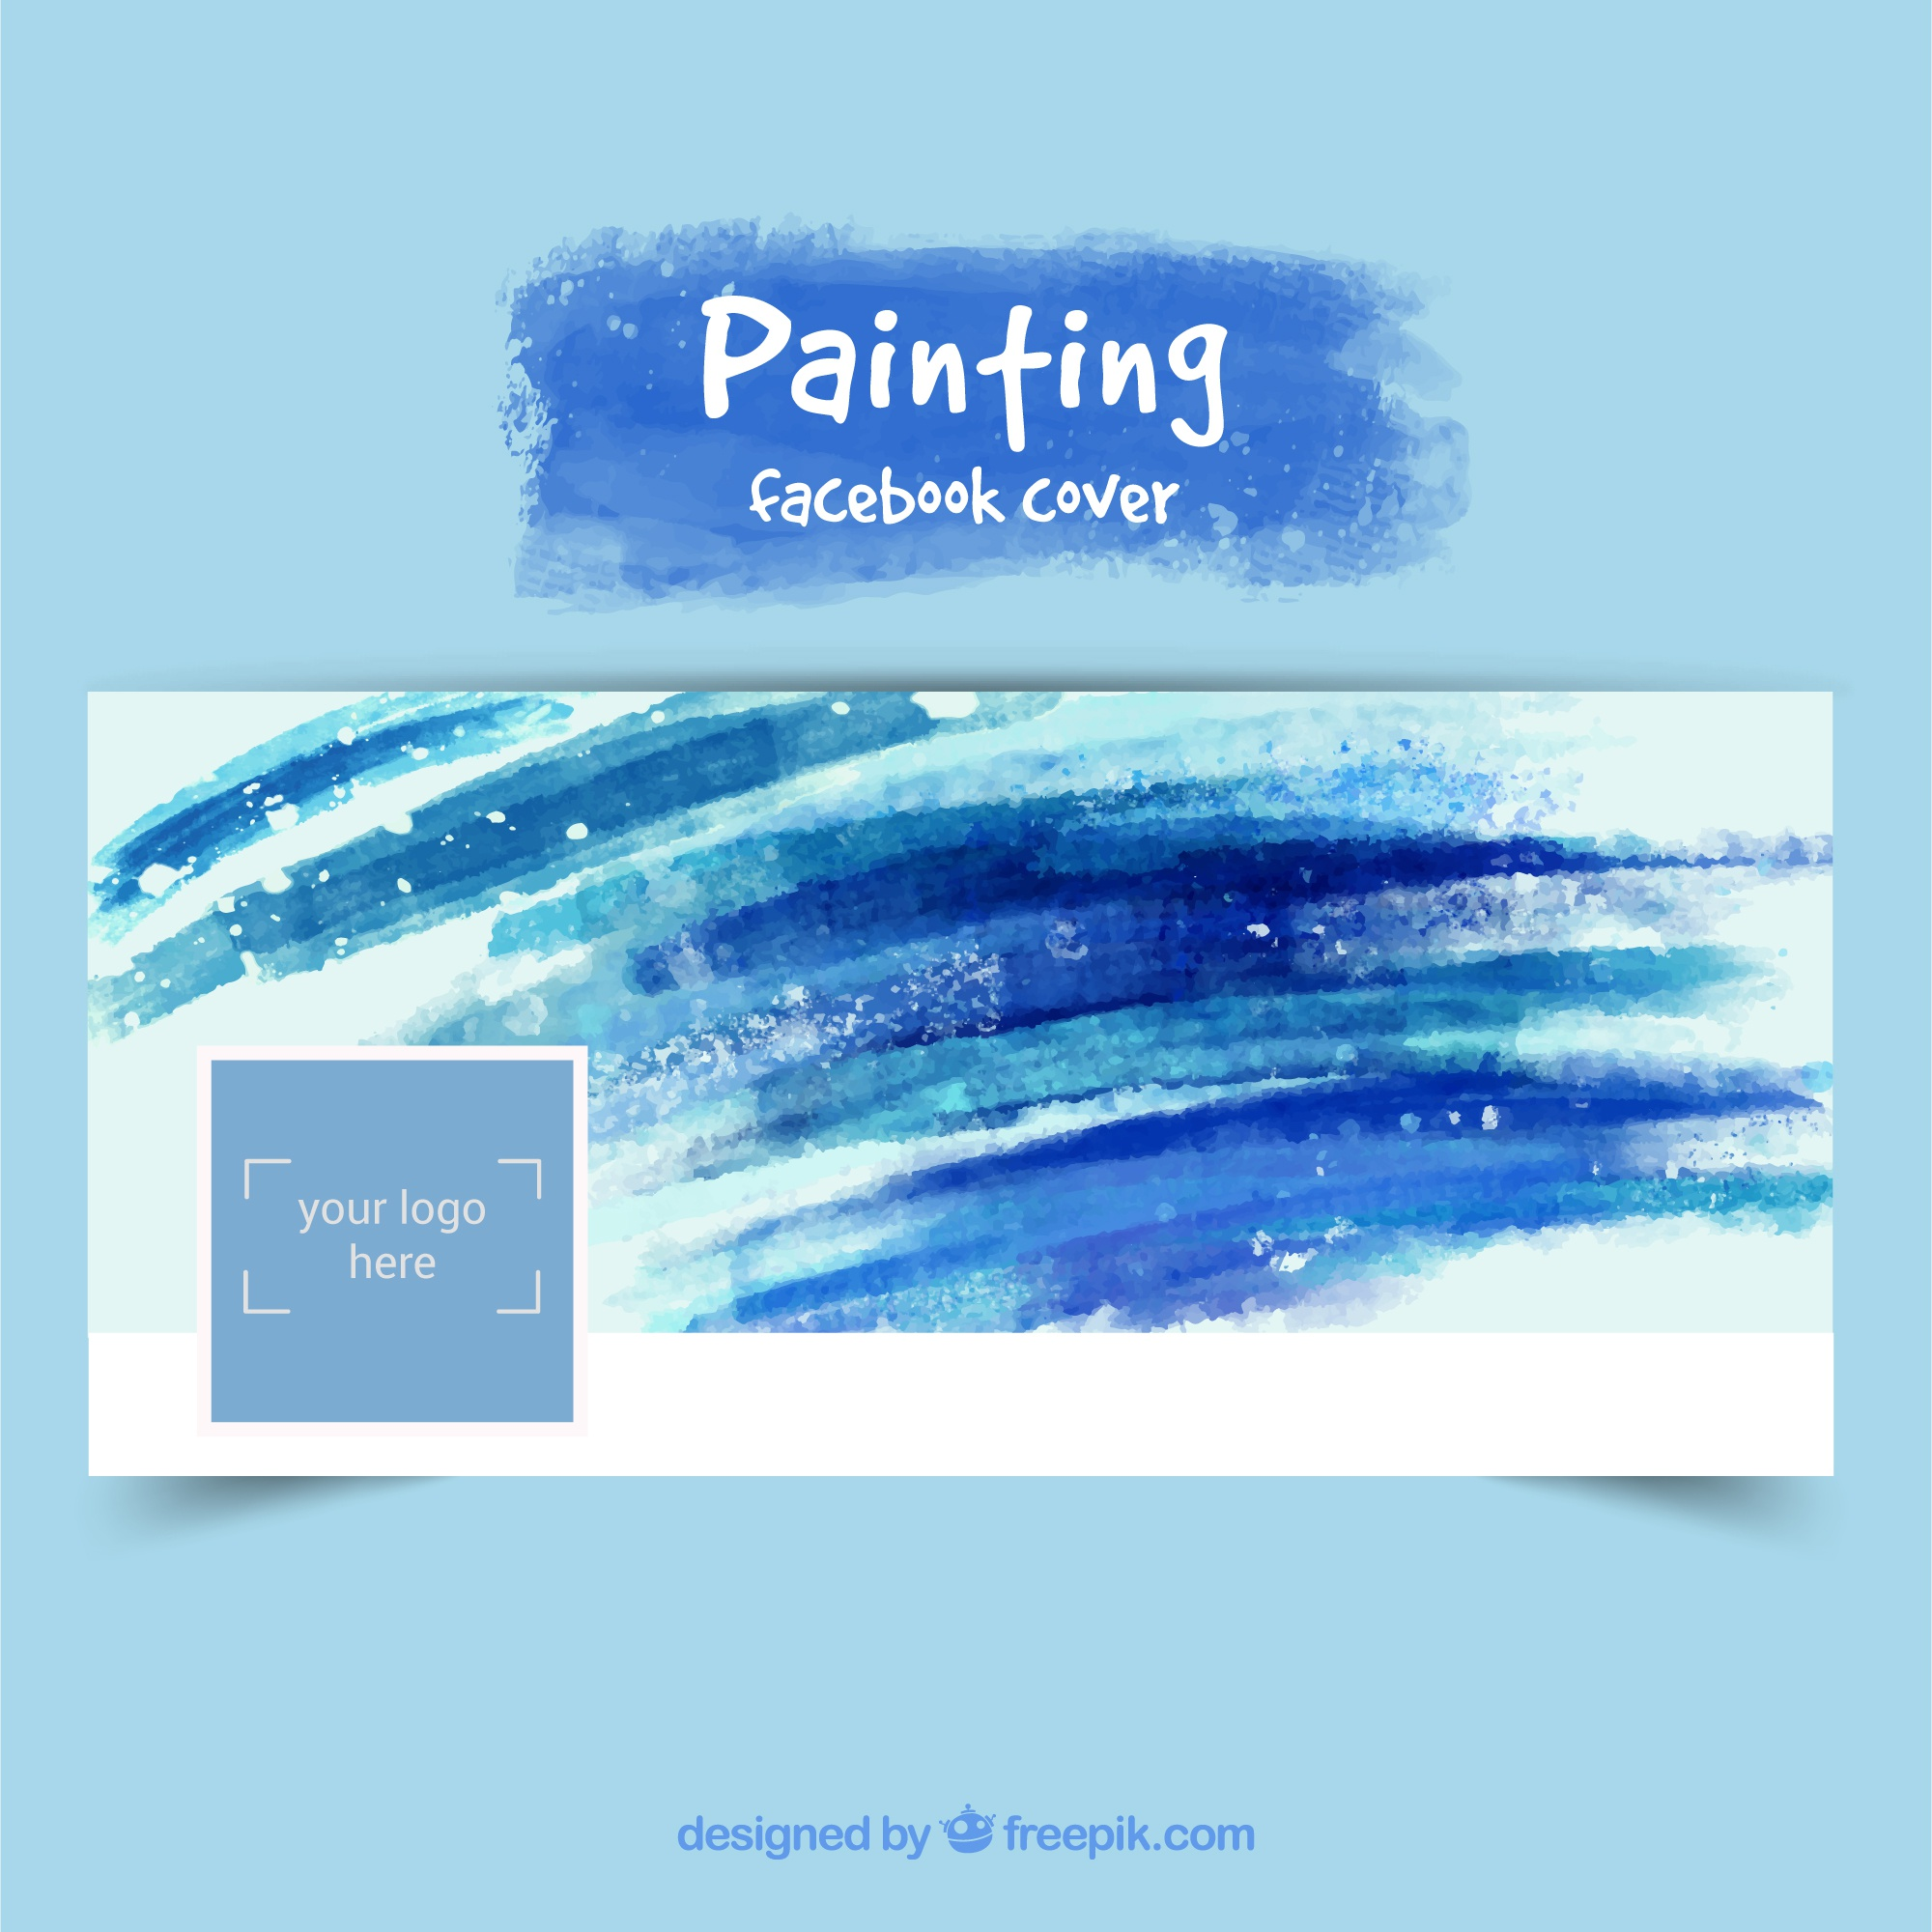 Hand painted facebook cover in blue tones